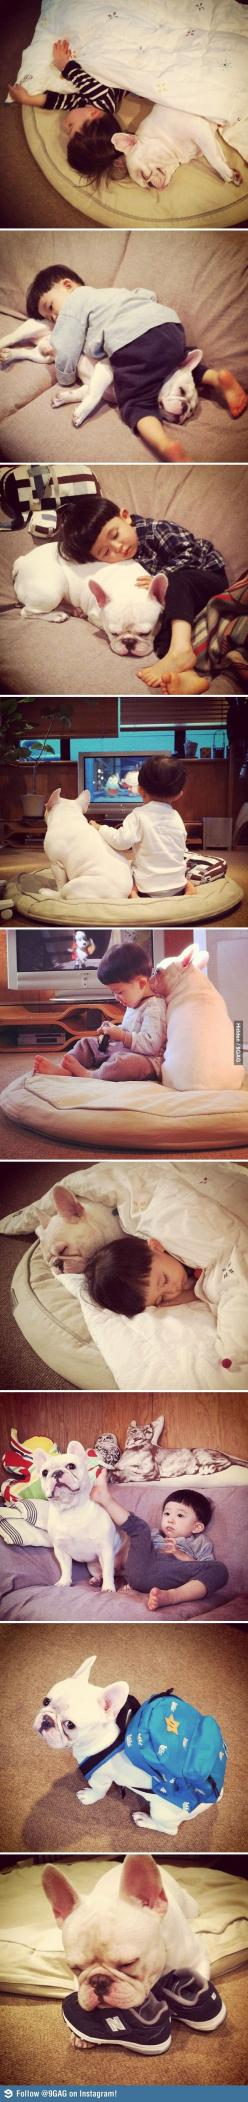 My Husband and our dog are just like this.: Dogs, Best Friends, Bff, Sweetest Friendship, Boy, Animal, Kid